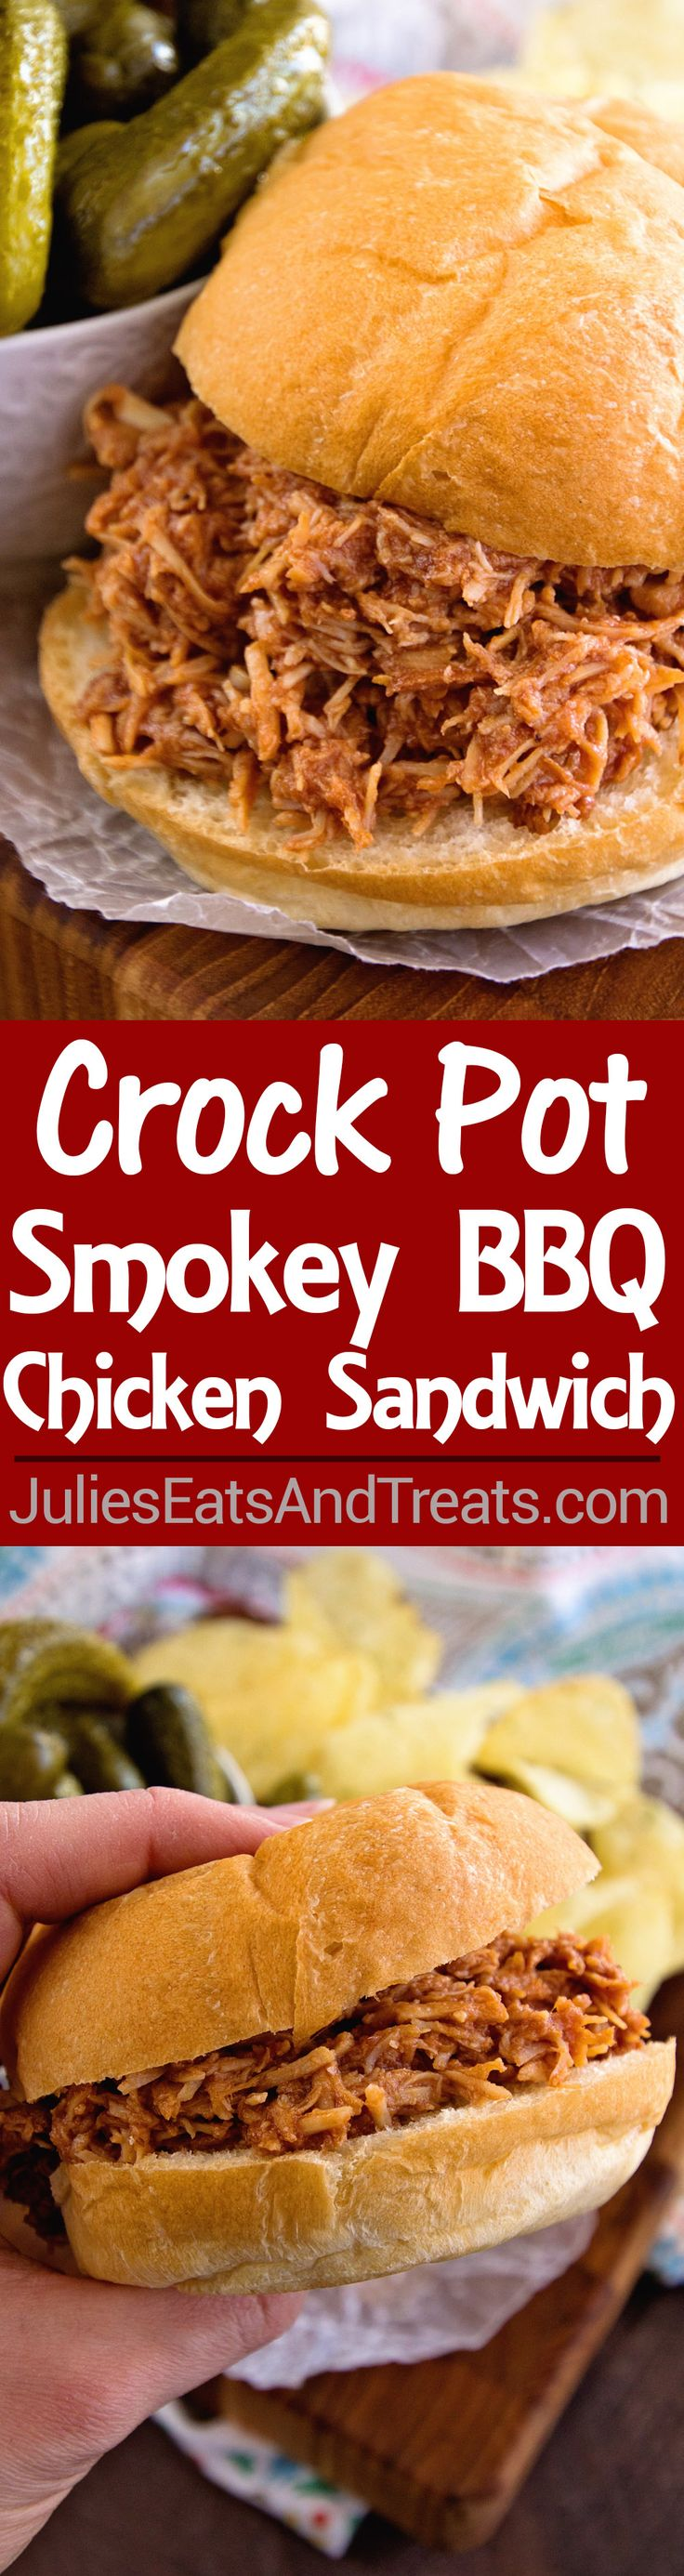 Crock Pot Smokey BBQ Shredded Chicken Sandwiches~ Easy, Shredded Chicken Sandwiches in Your Slow Cooker! Tender, Moist and Delicious Flavored with Liquid Smoke and Smothered in Barbecue Sauce! on MyRecipeMagic.com